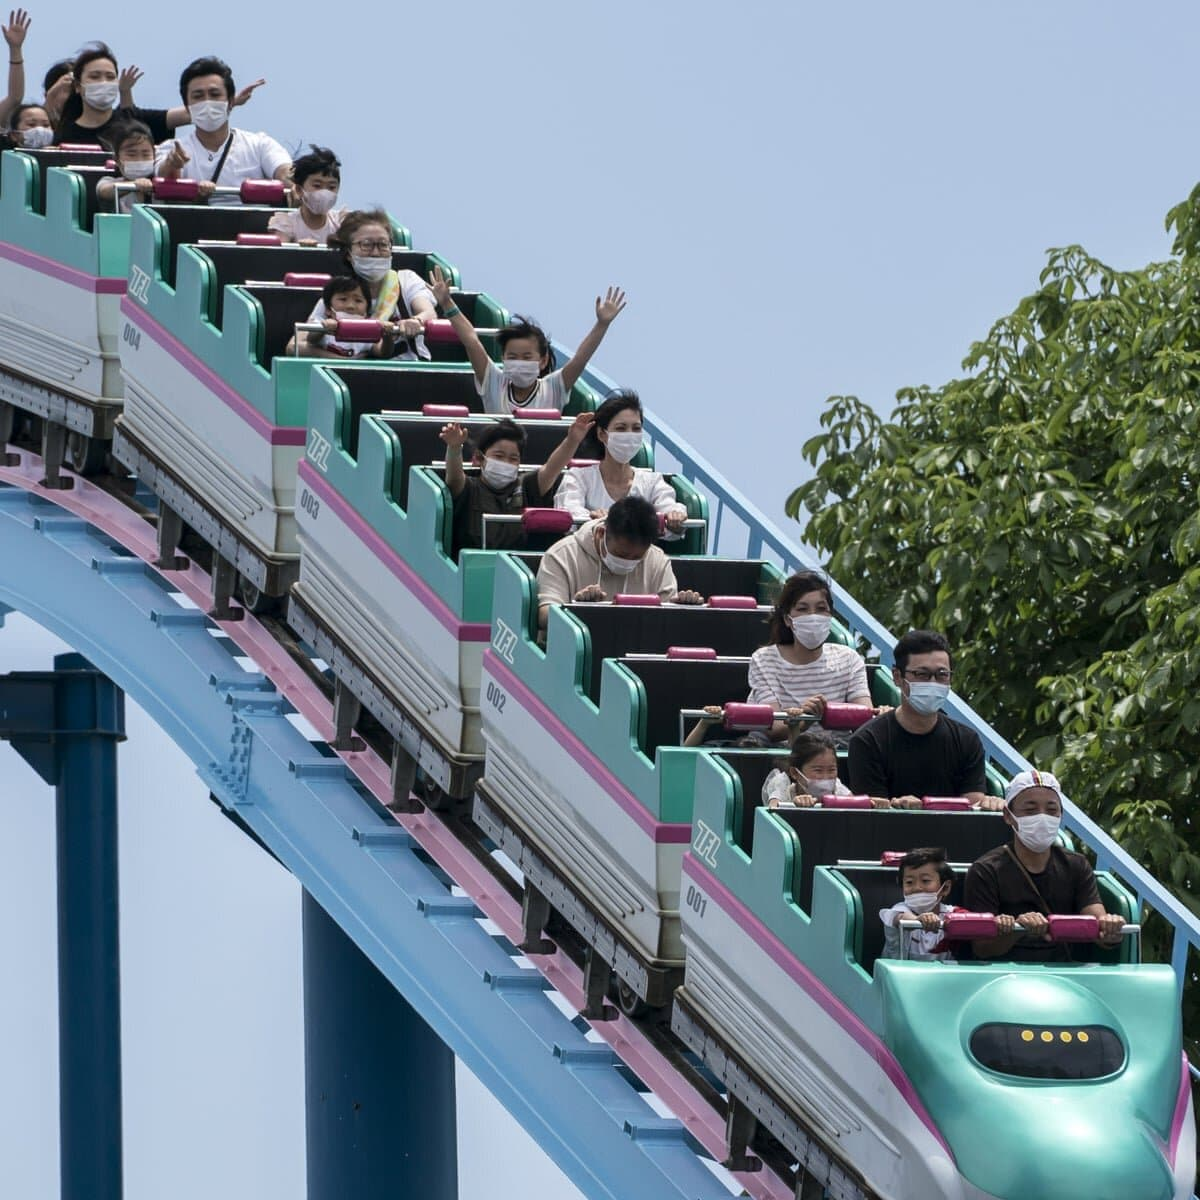 Roller Coaster Accidents Reasons To Avoid Theme Parks After Covid 19 Film Daily